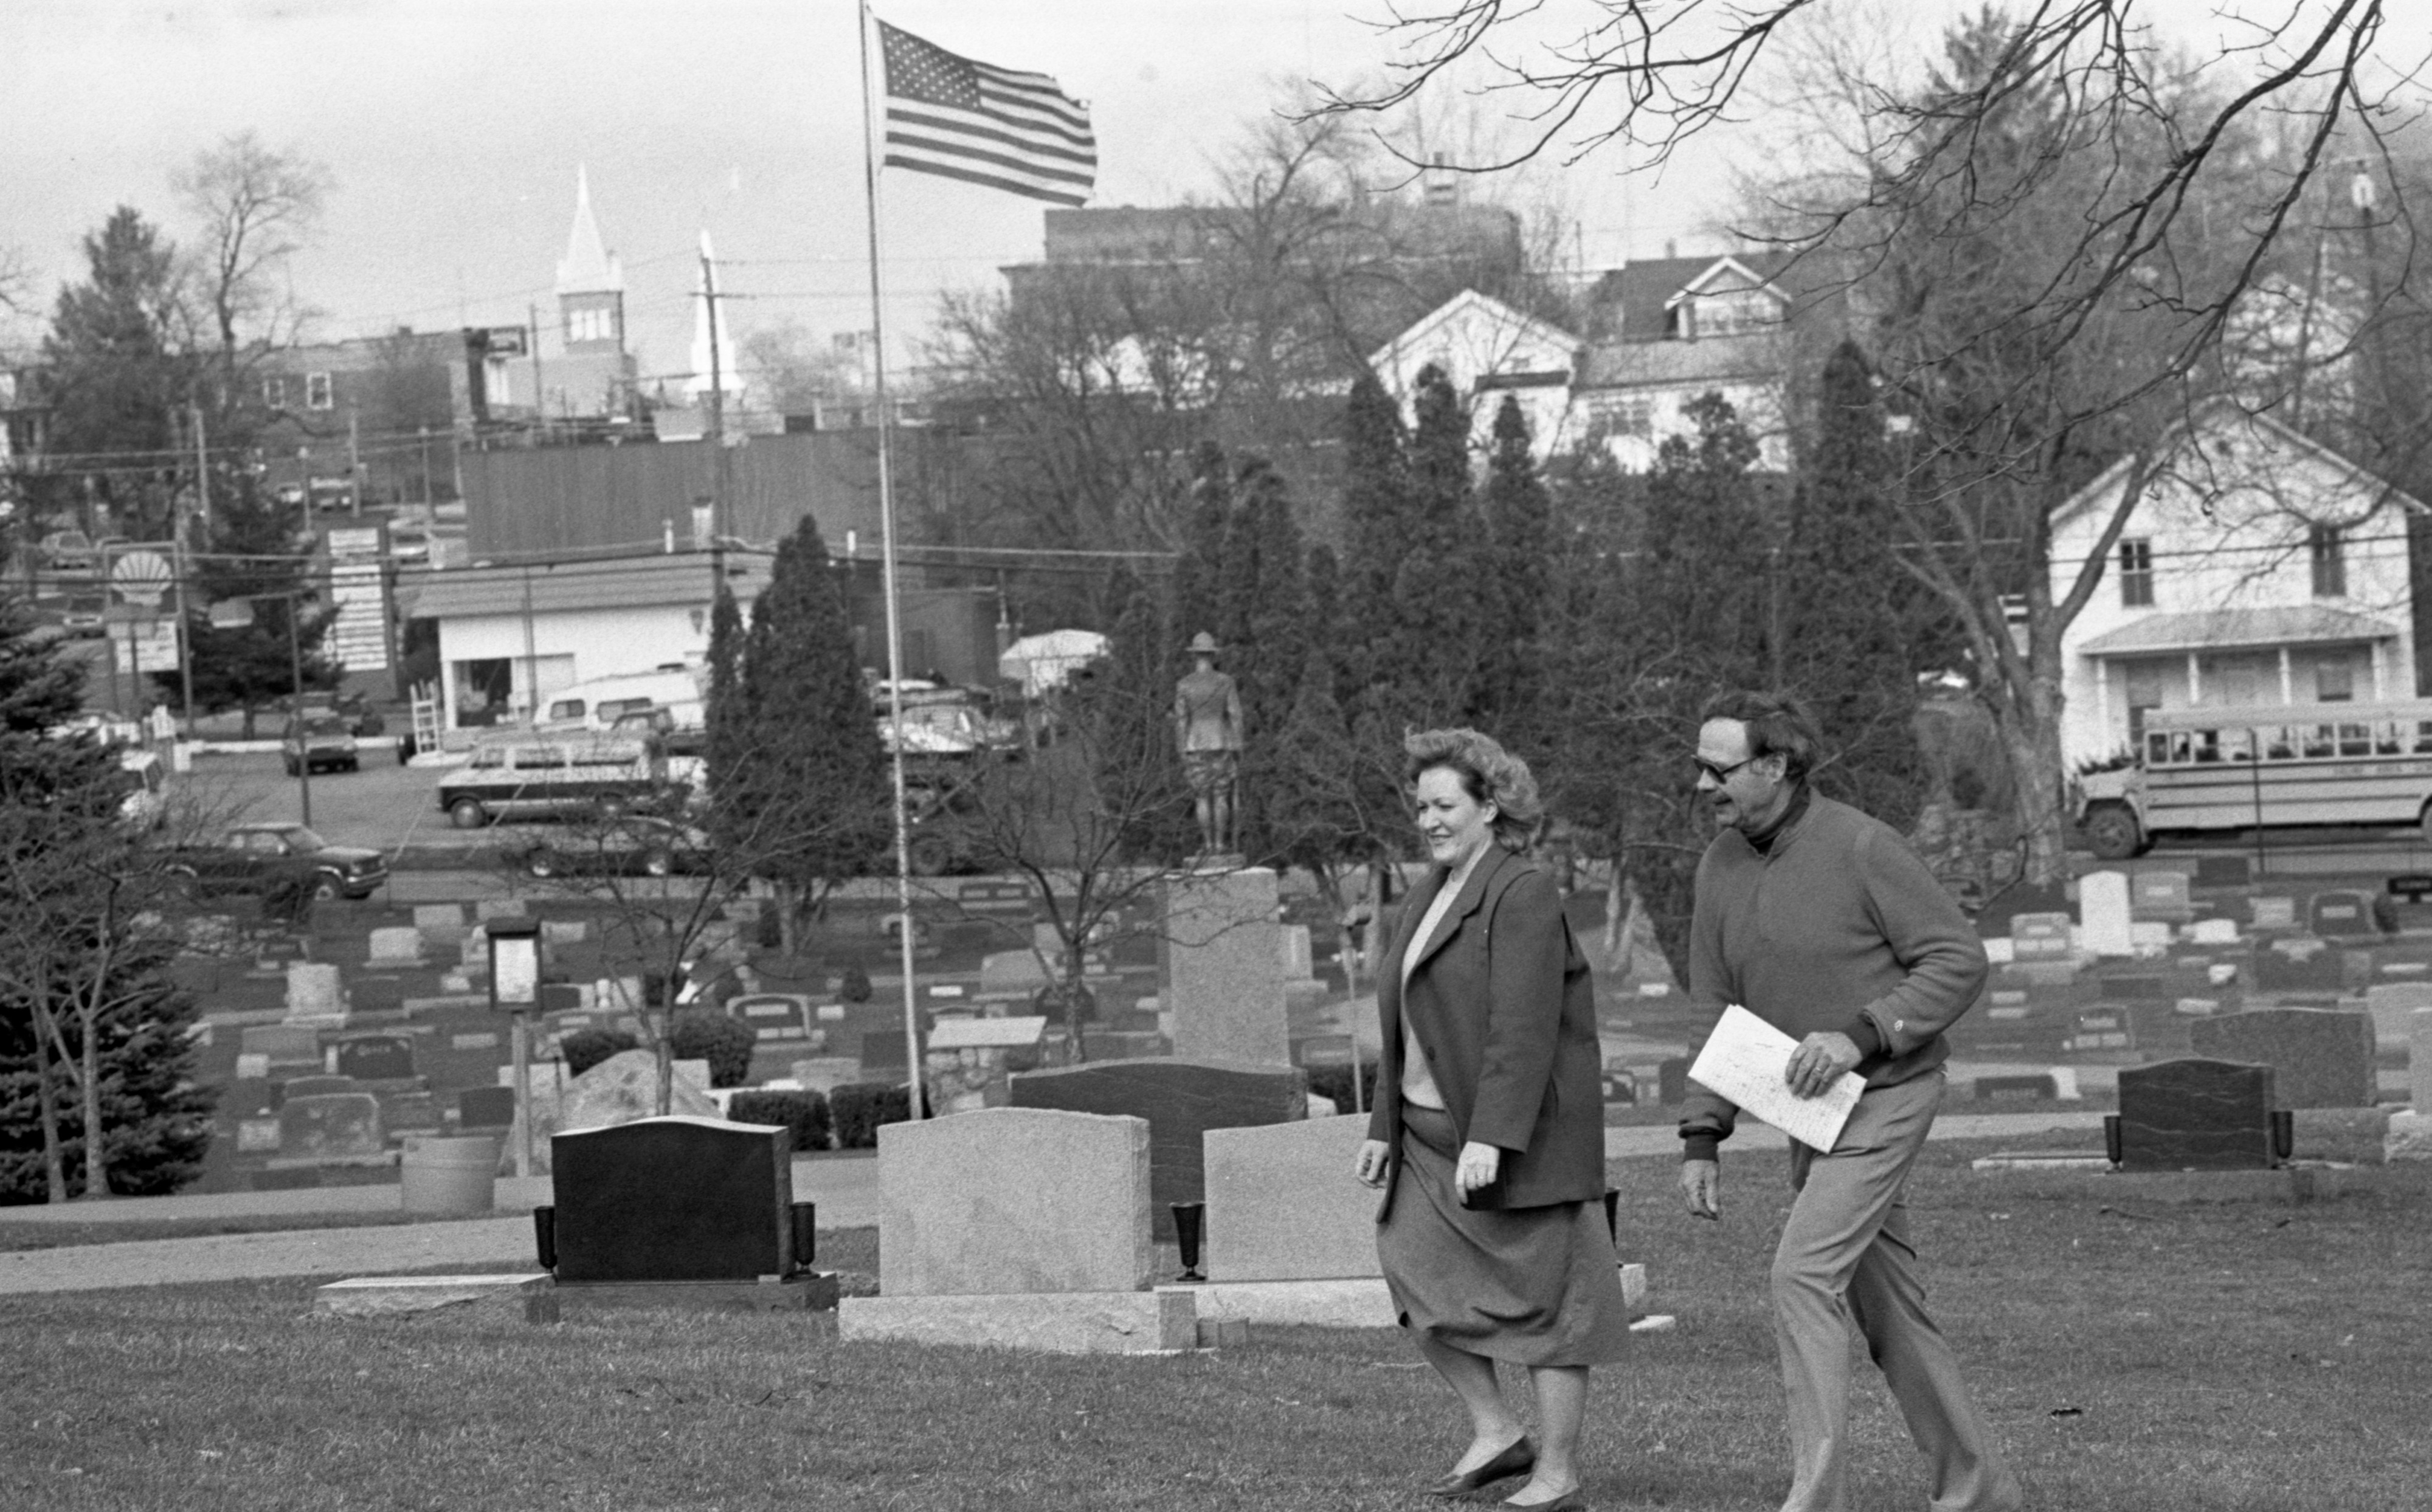 Cindy Langer & Wayne Clements Survey Oakwood Cemetery In Saline, April 1990 image